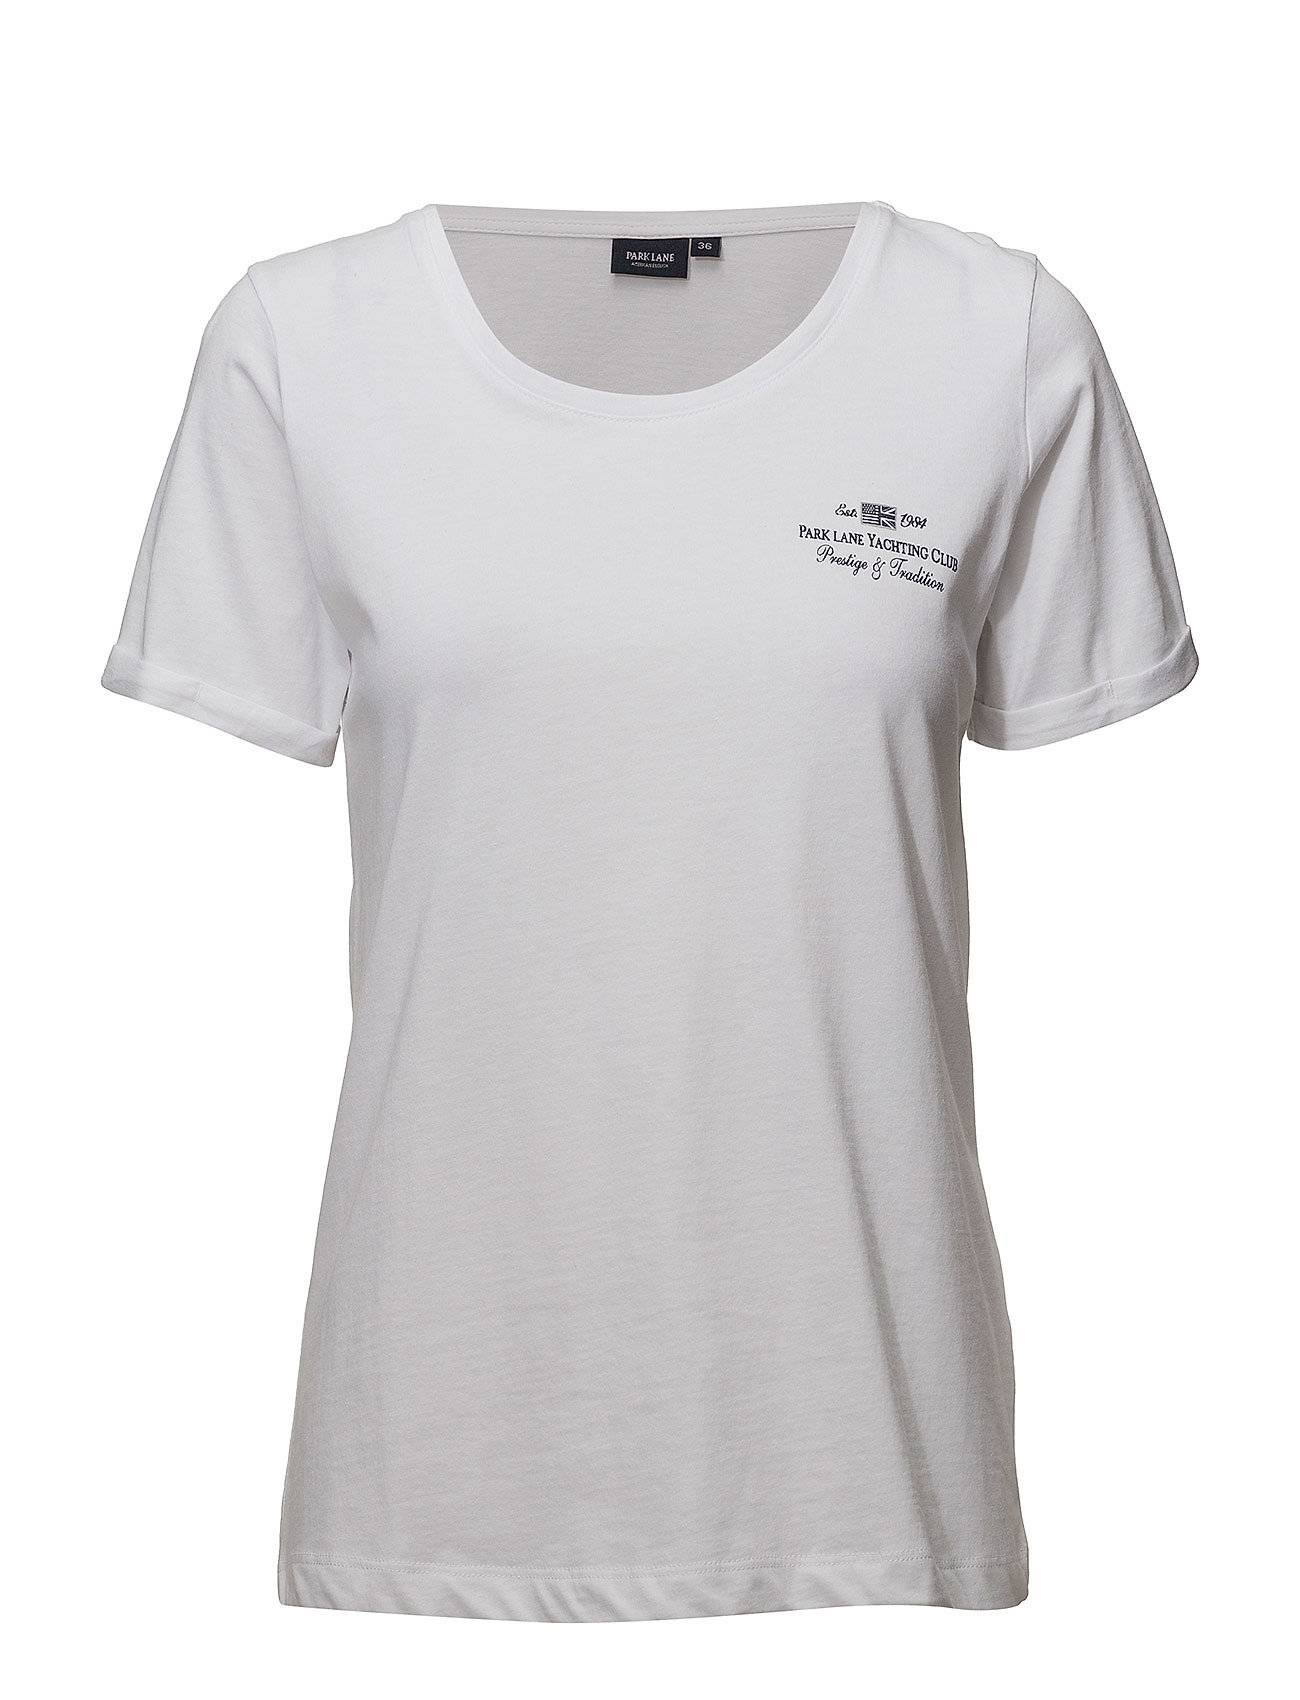 Park Lane Tee With Logo